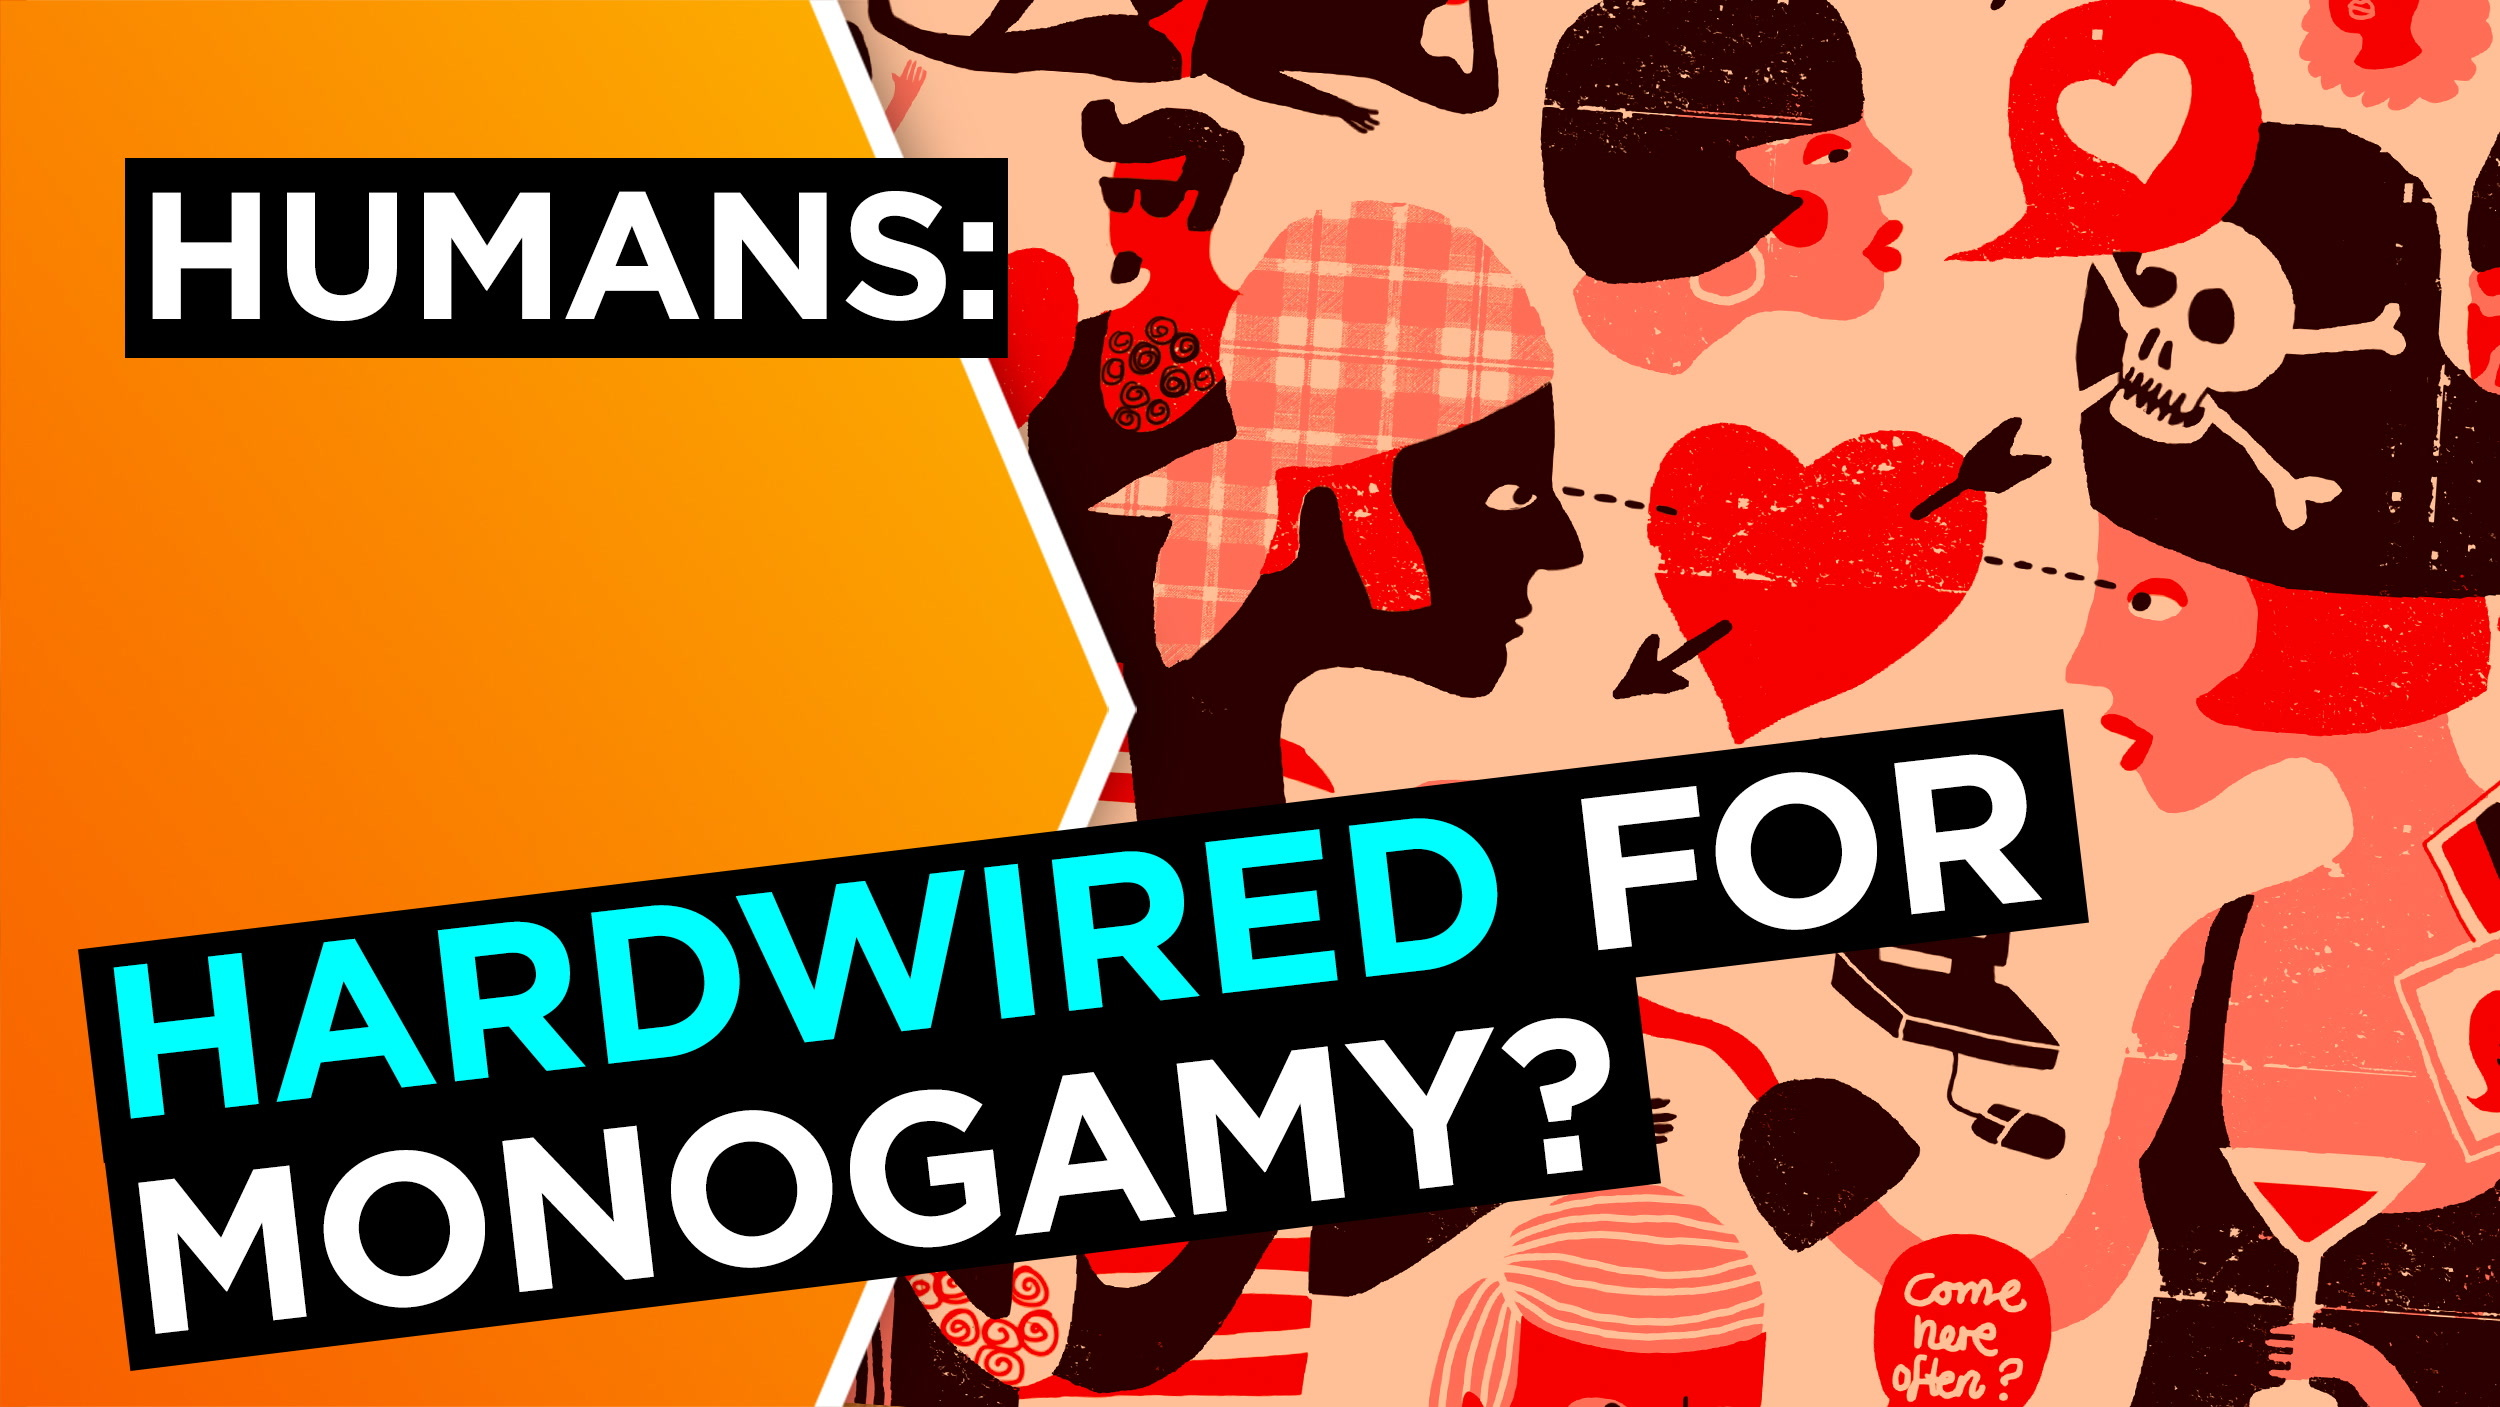 Are humans hardwired for monogamy?